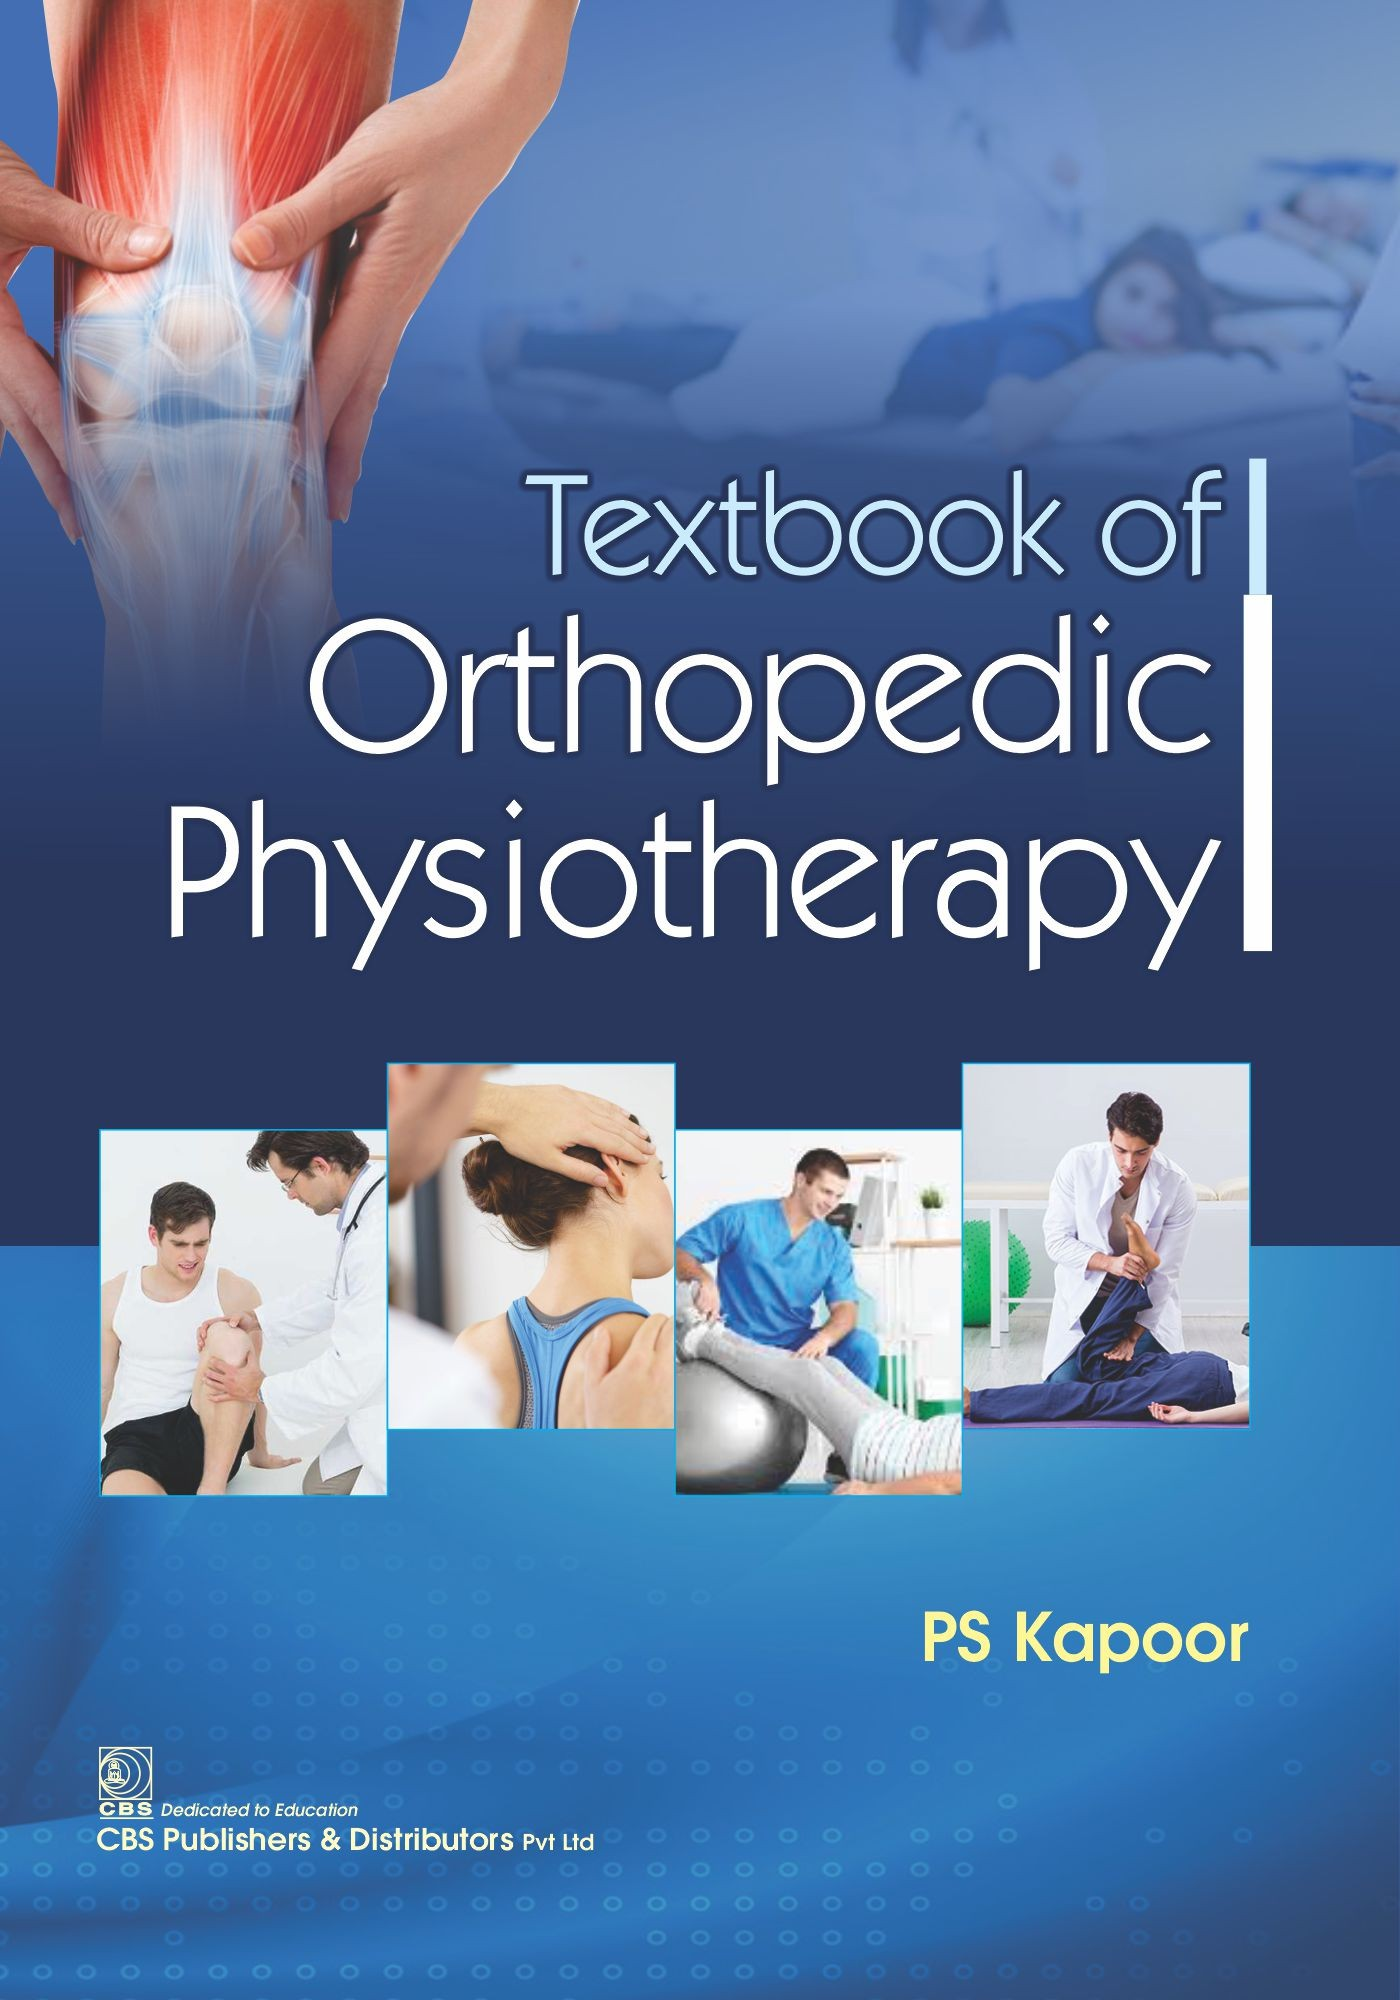 Textbook of Orthopedic Physiotherapy